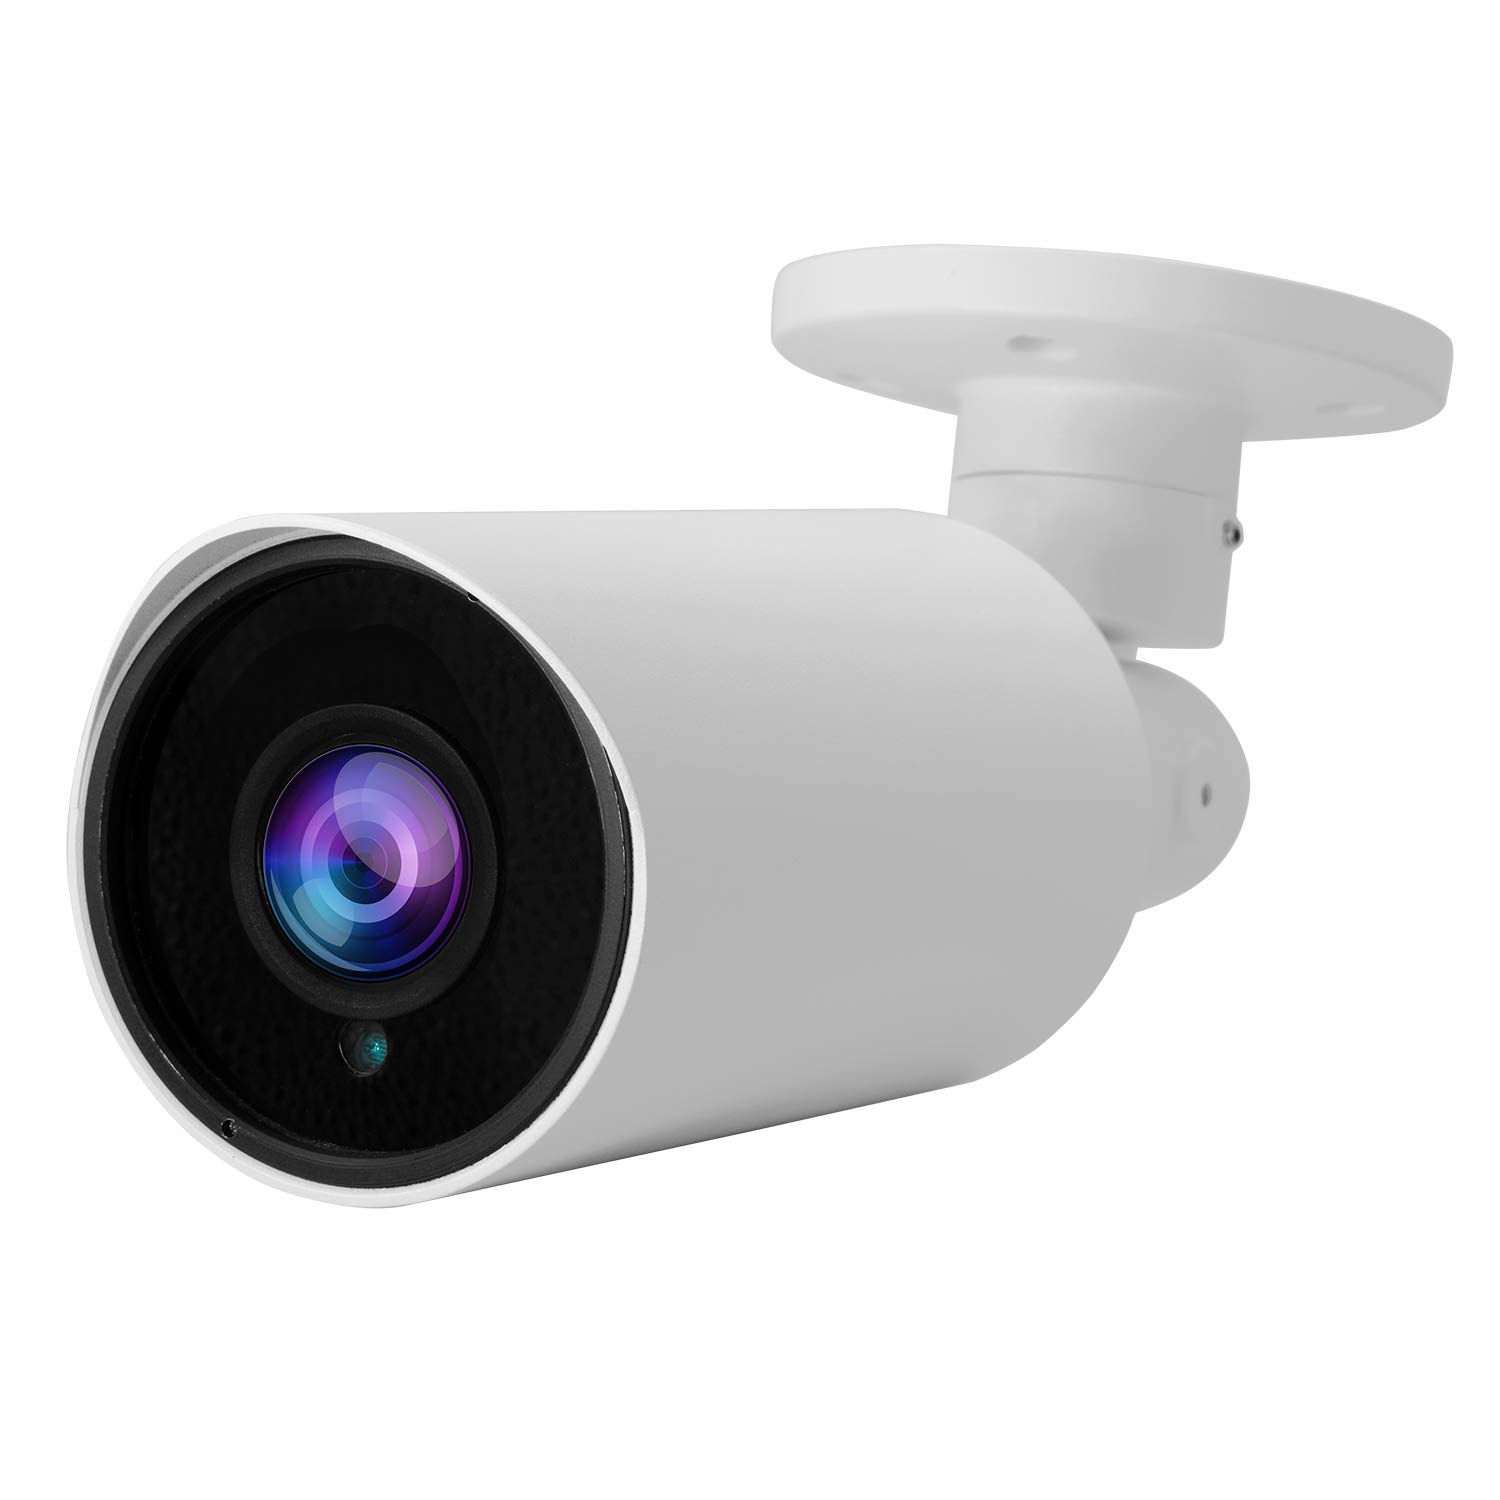 Evertech 1080P HD Bullet Security Camera Day Night Vision Outdoor Indoor 2.8-12 mm Manual Zoom Compatible w/AHD TVI CVI and Traditional Analog DVRs